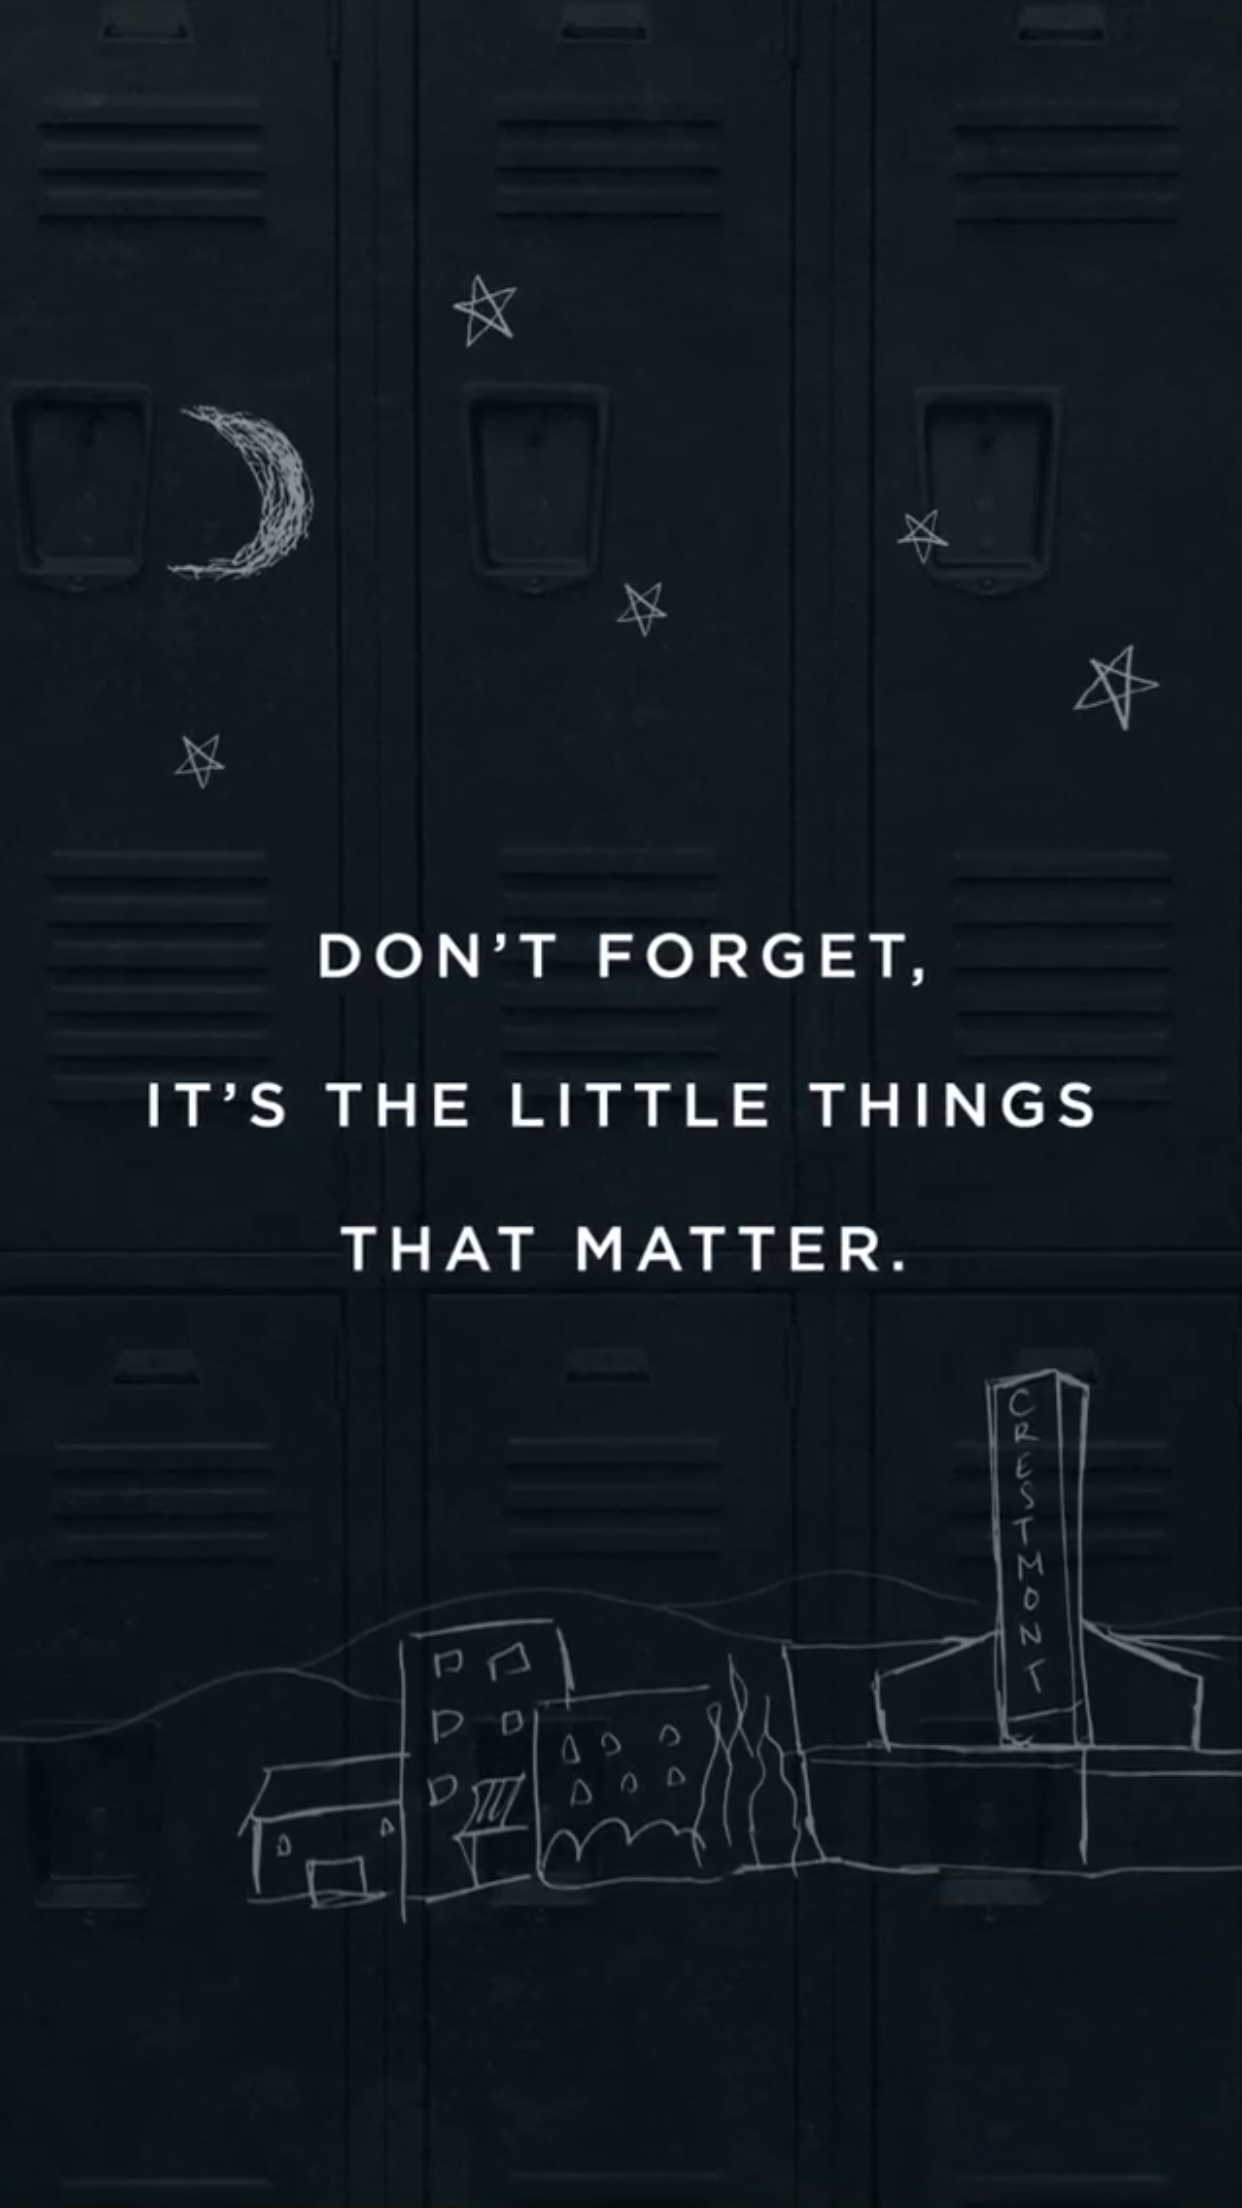 Iphone lock screen wallpaper tumblr quotes - 13 Reasons Why